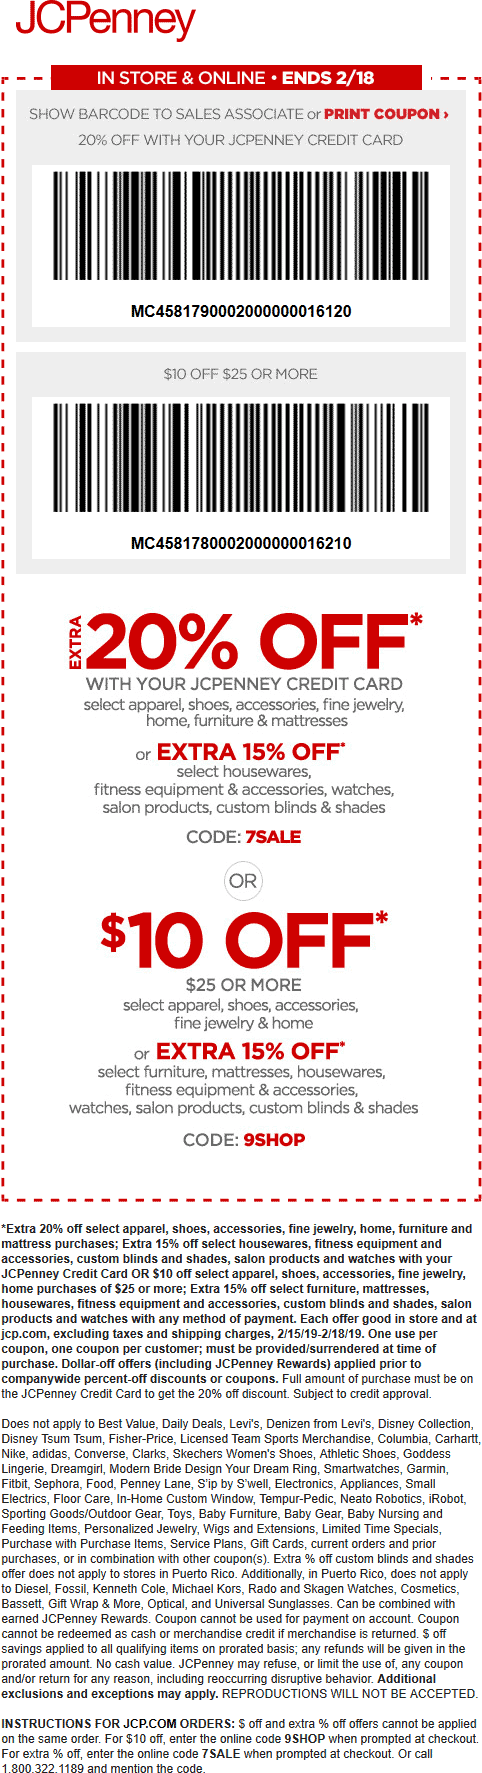 JCPenney.com Promo Coupon $10 off $25 at JCPenney, or online via promo code 9SHOP